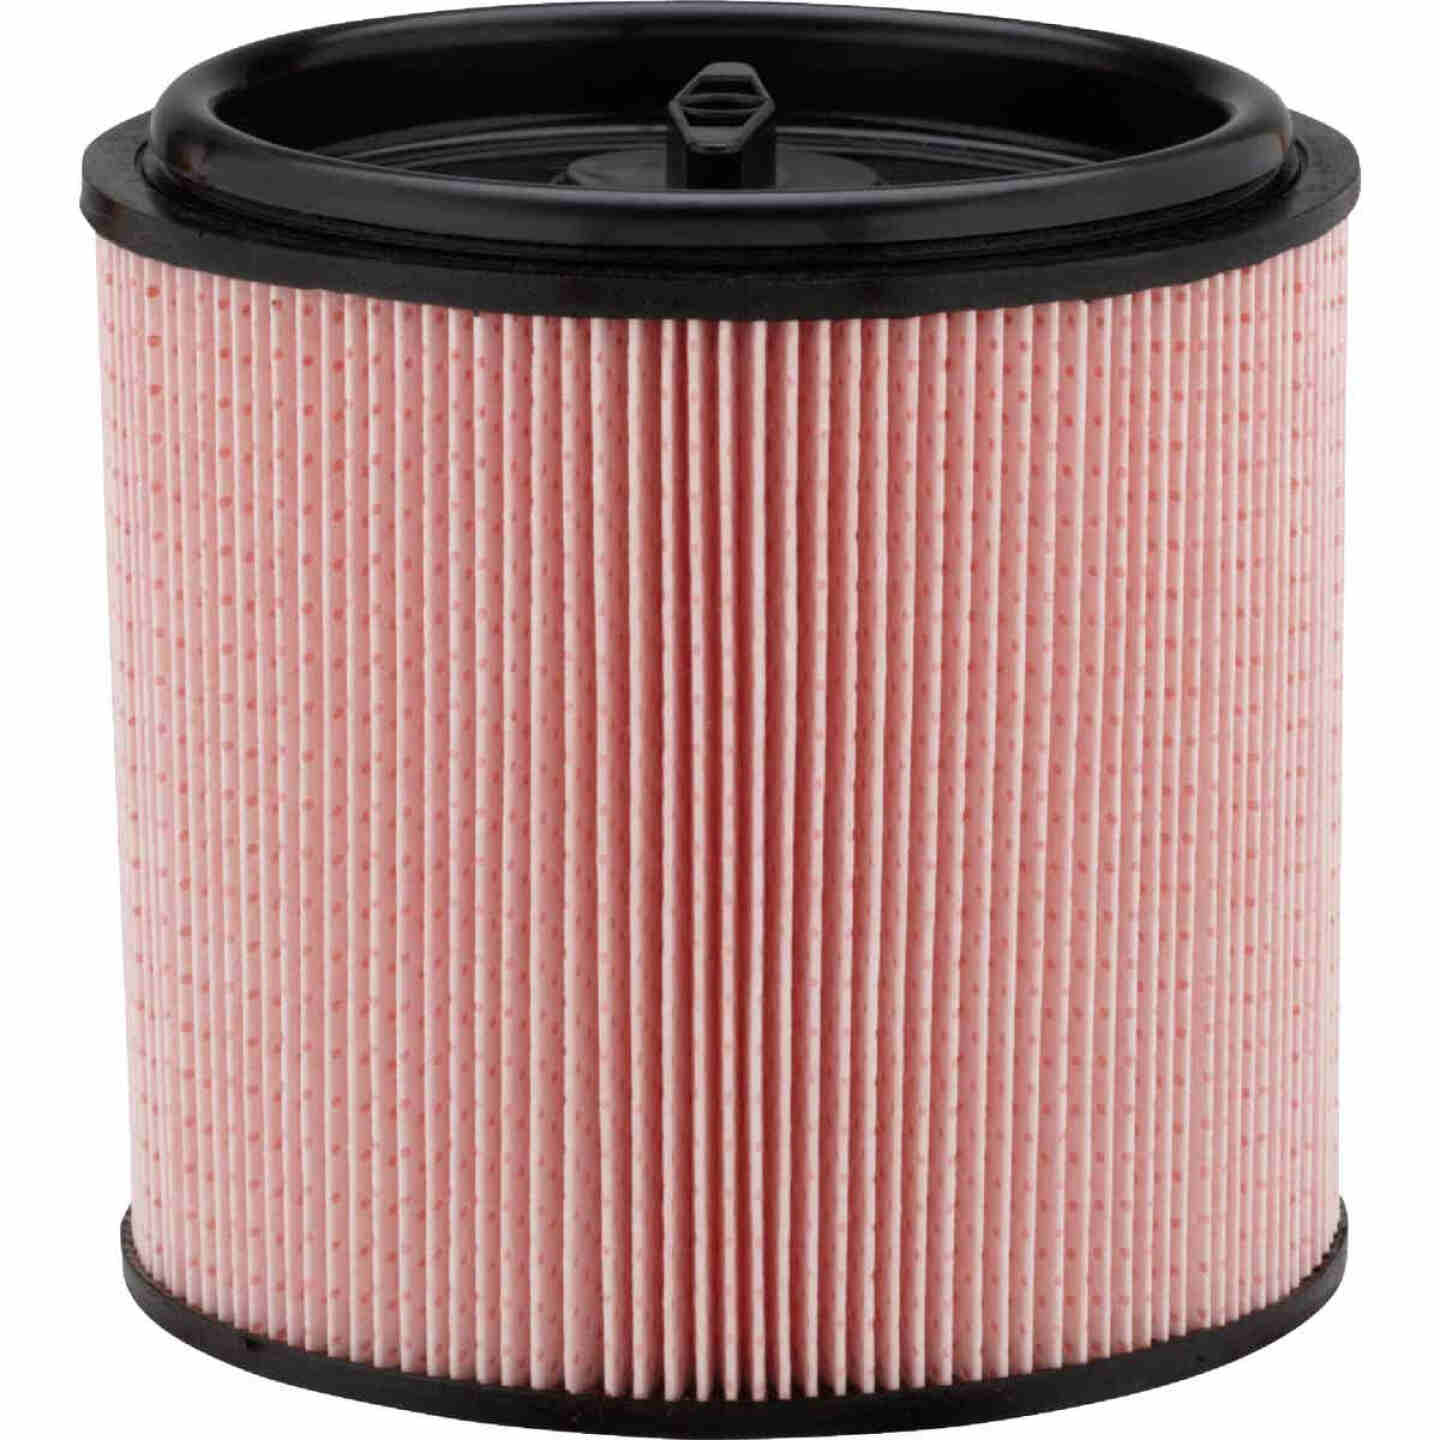 Channellock Cartridge Fine Dust 5 to 20 Gal. Vacuum Filter Image 1